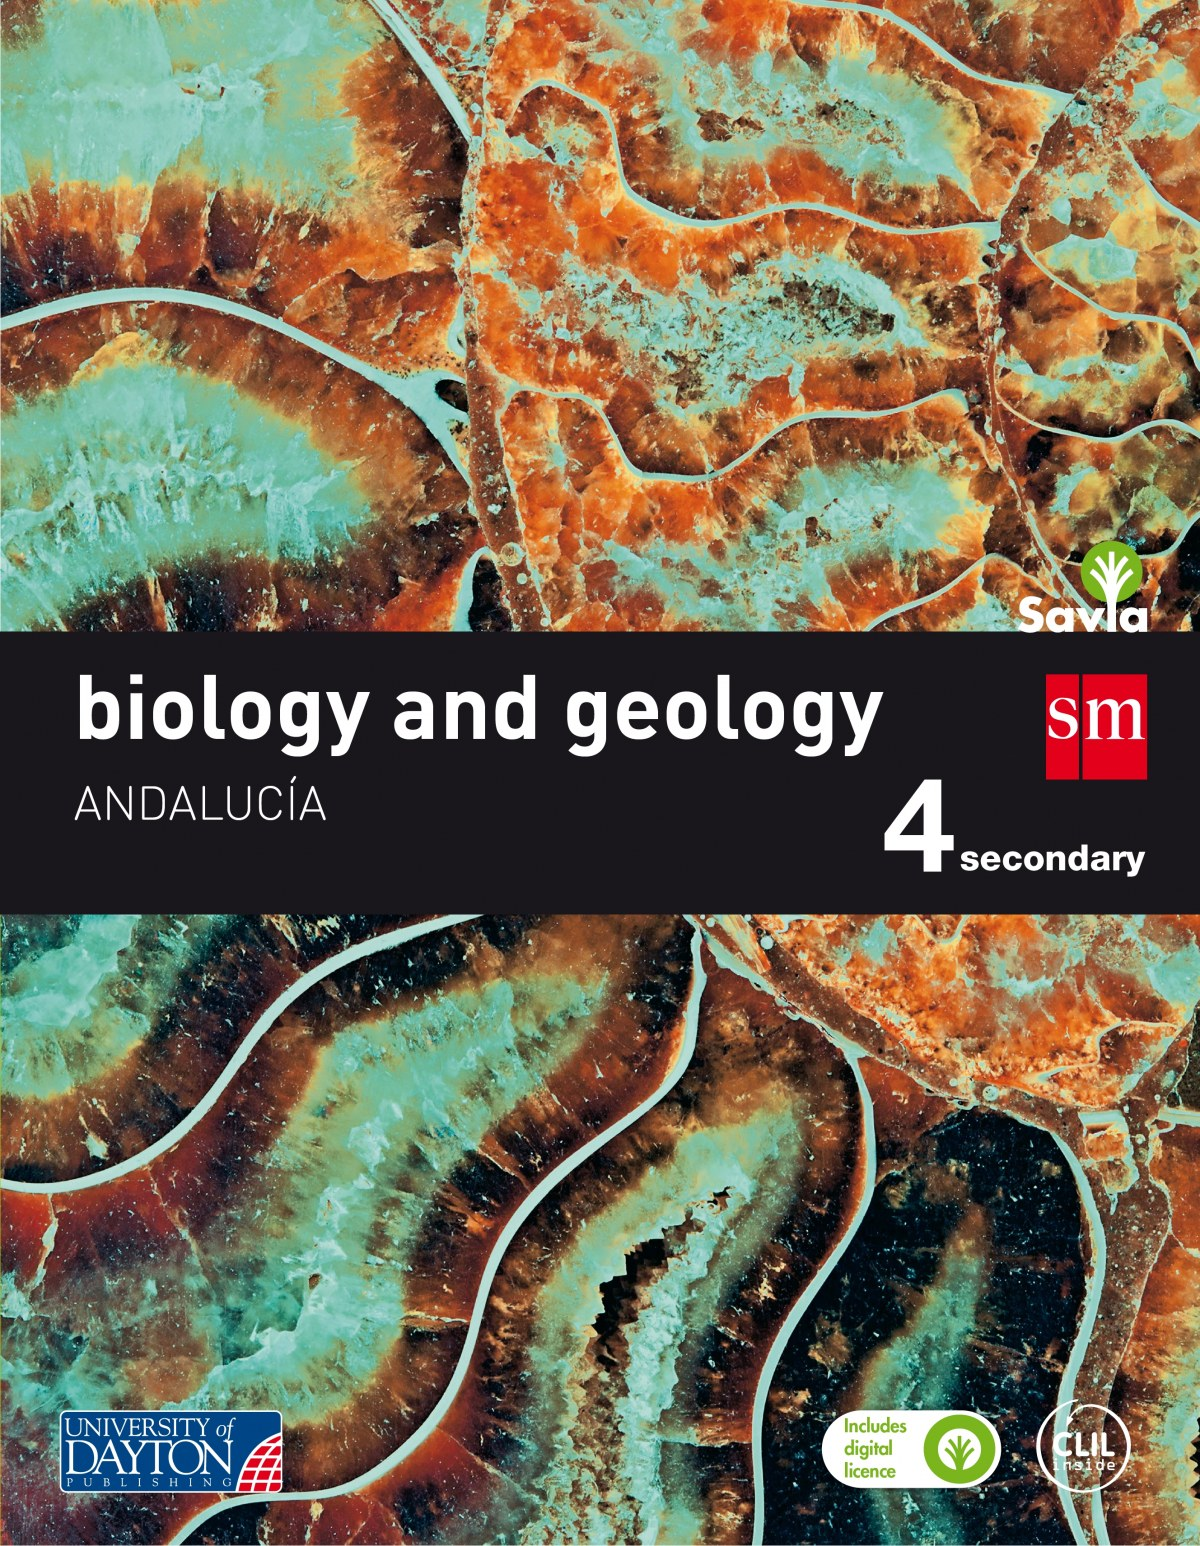 (AND).(17).BIOLOGY GEOLOGY 4ºESO (SAVIA).*ANDALUCIA*